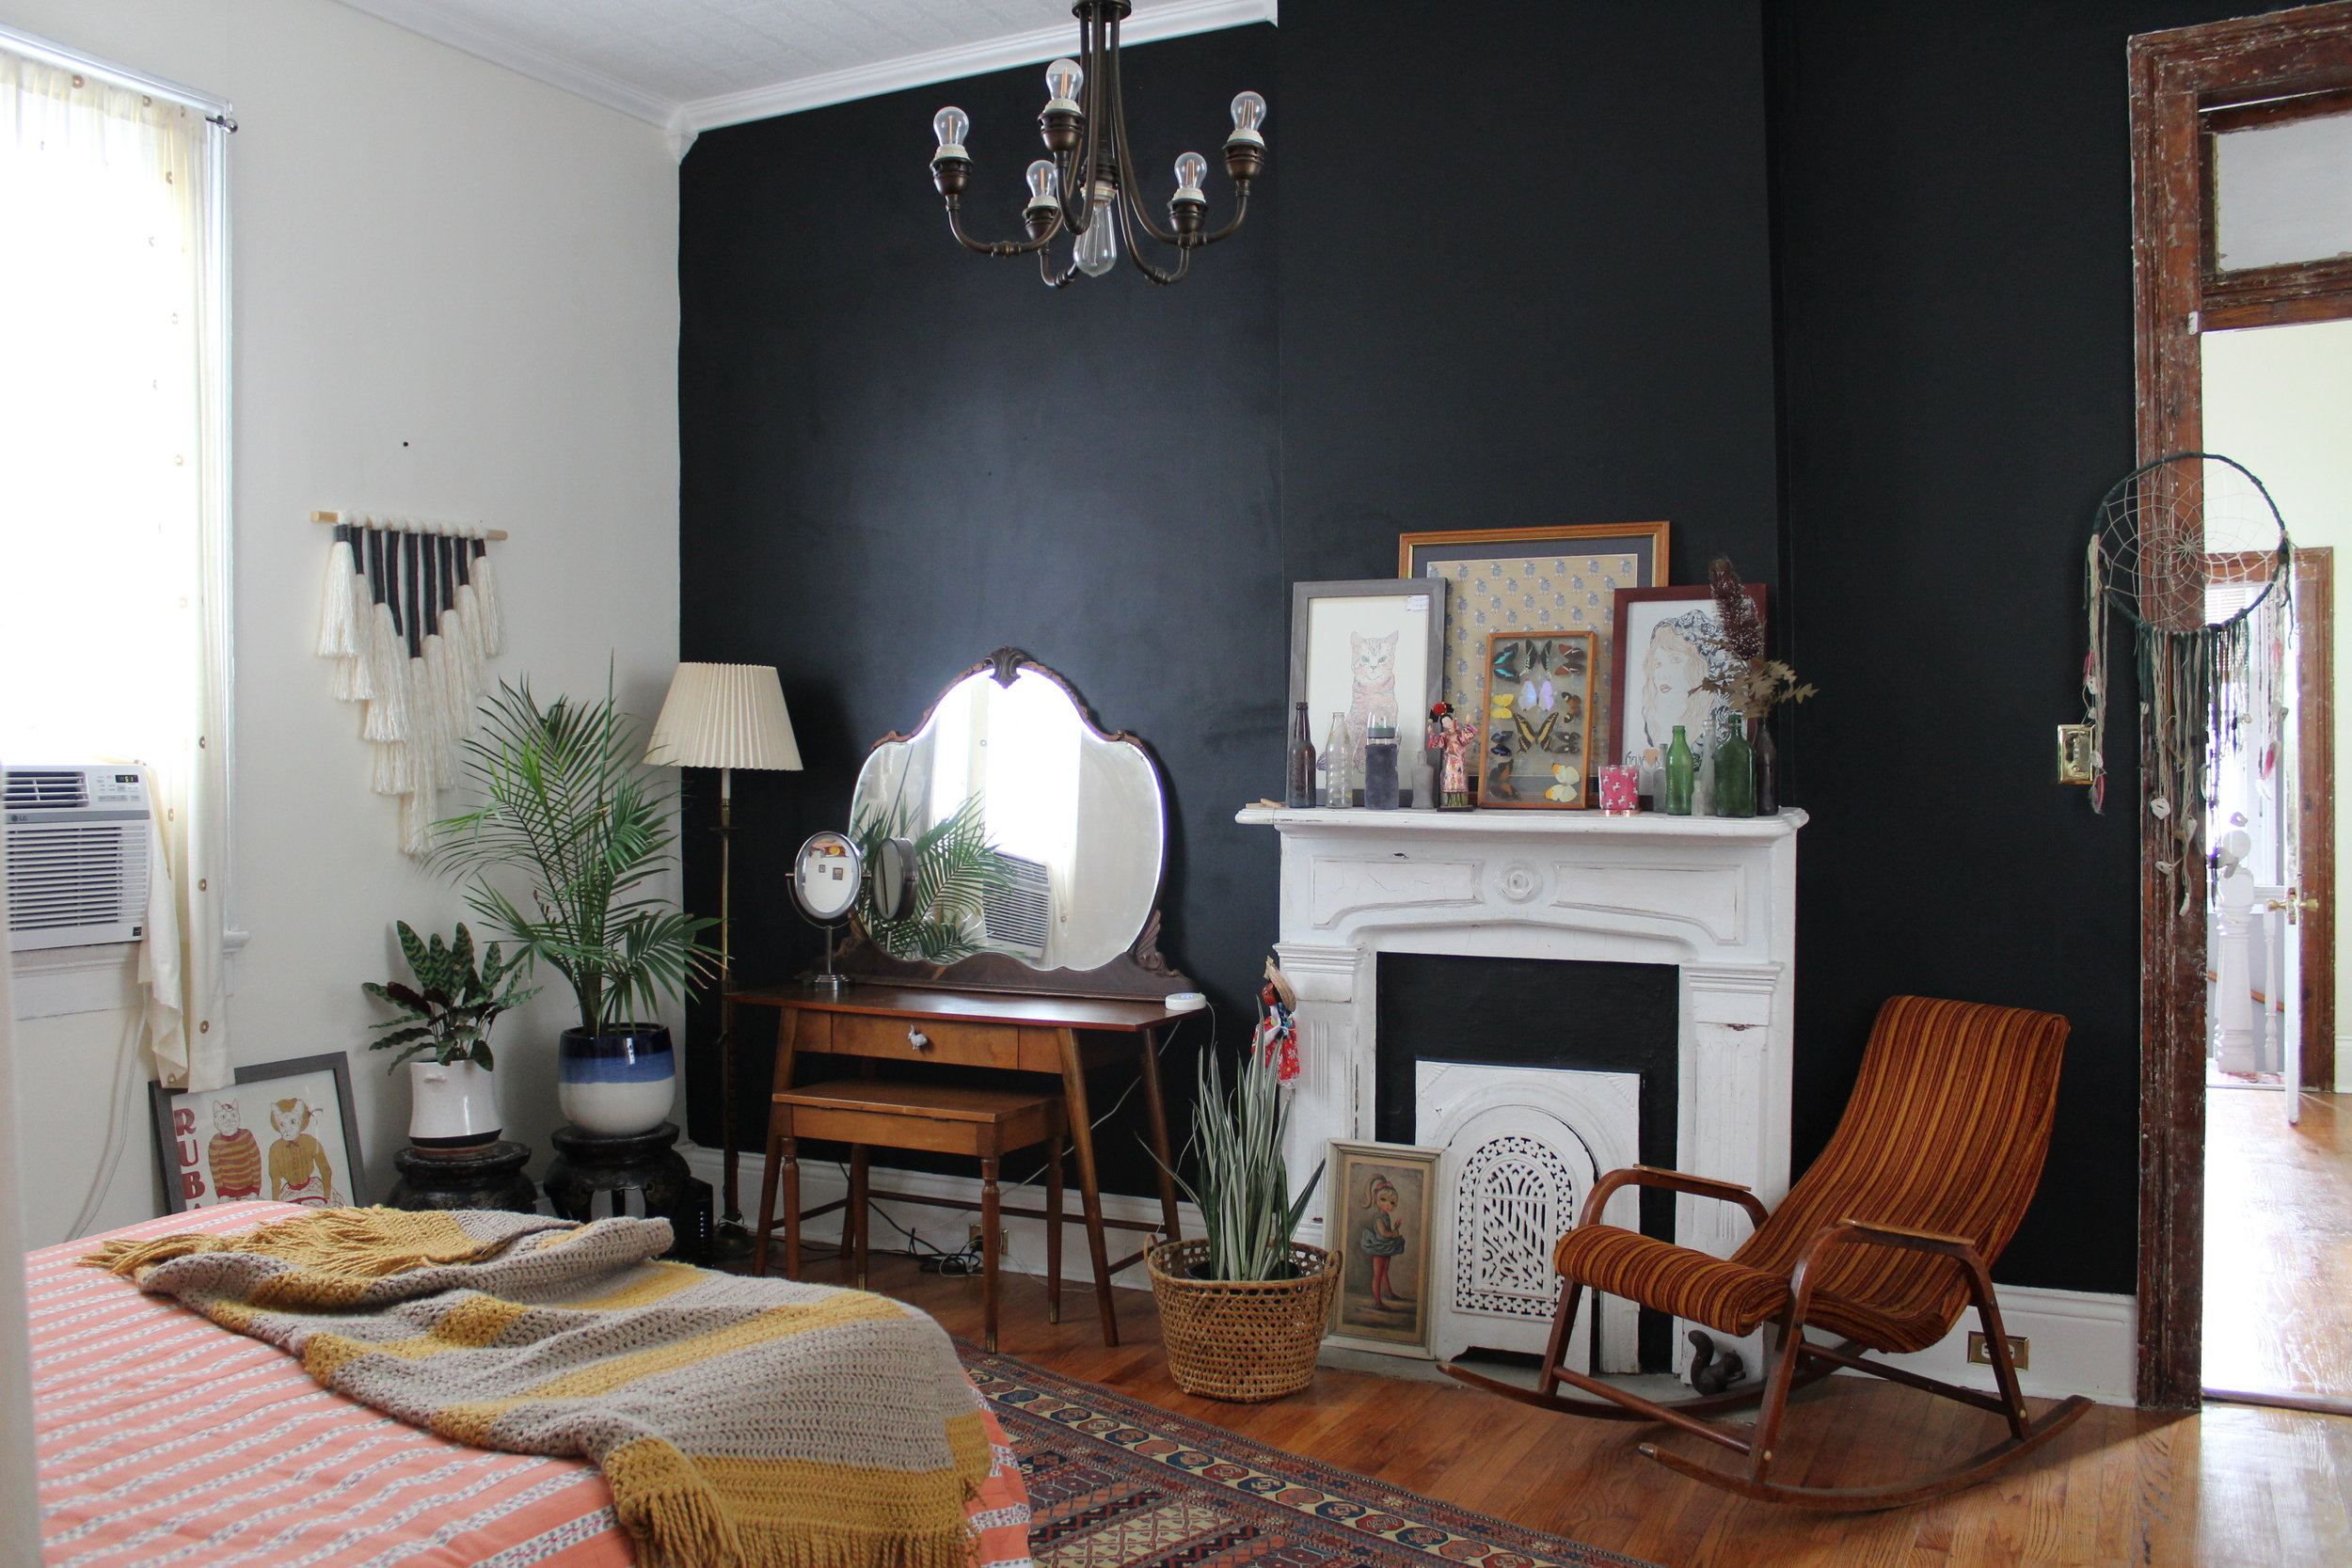 Bold black accent wall to add drama in the space.